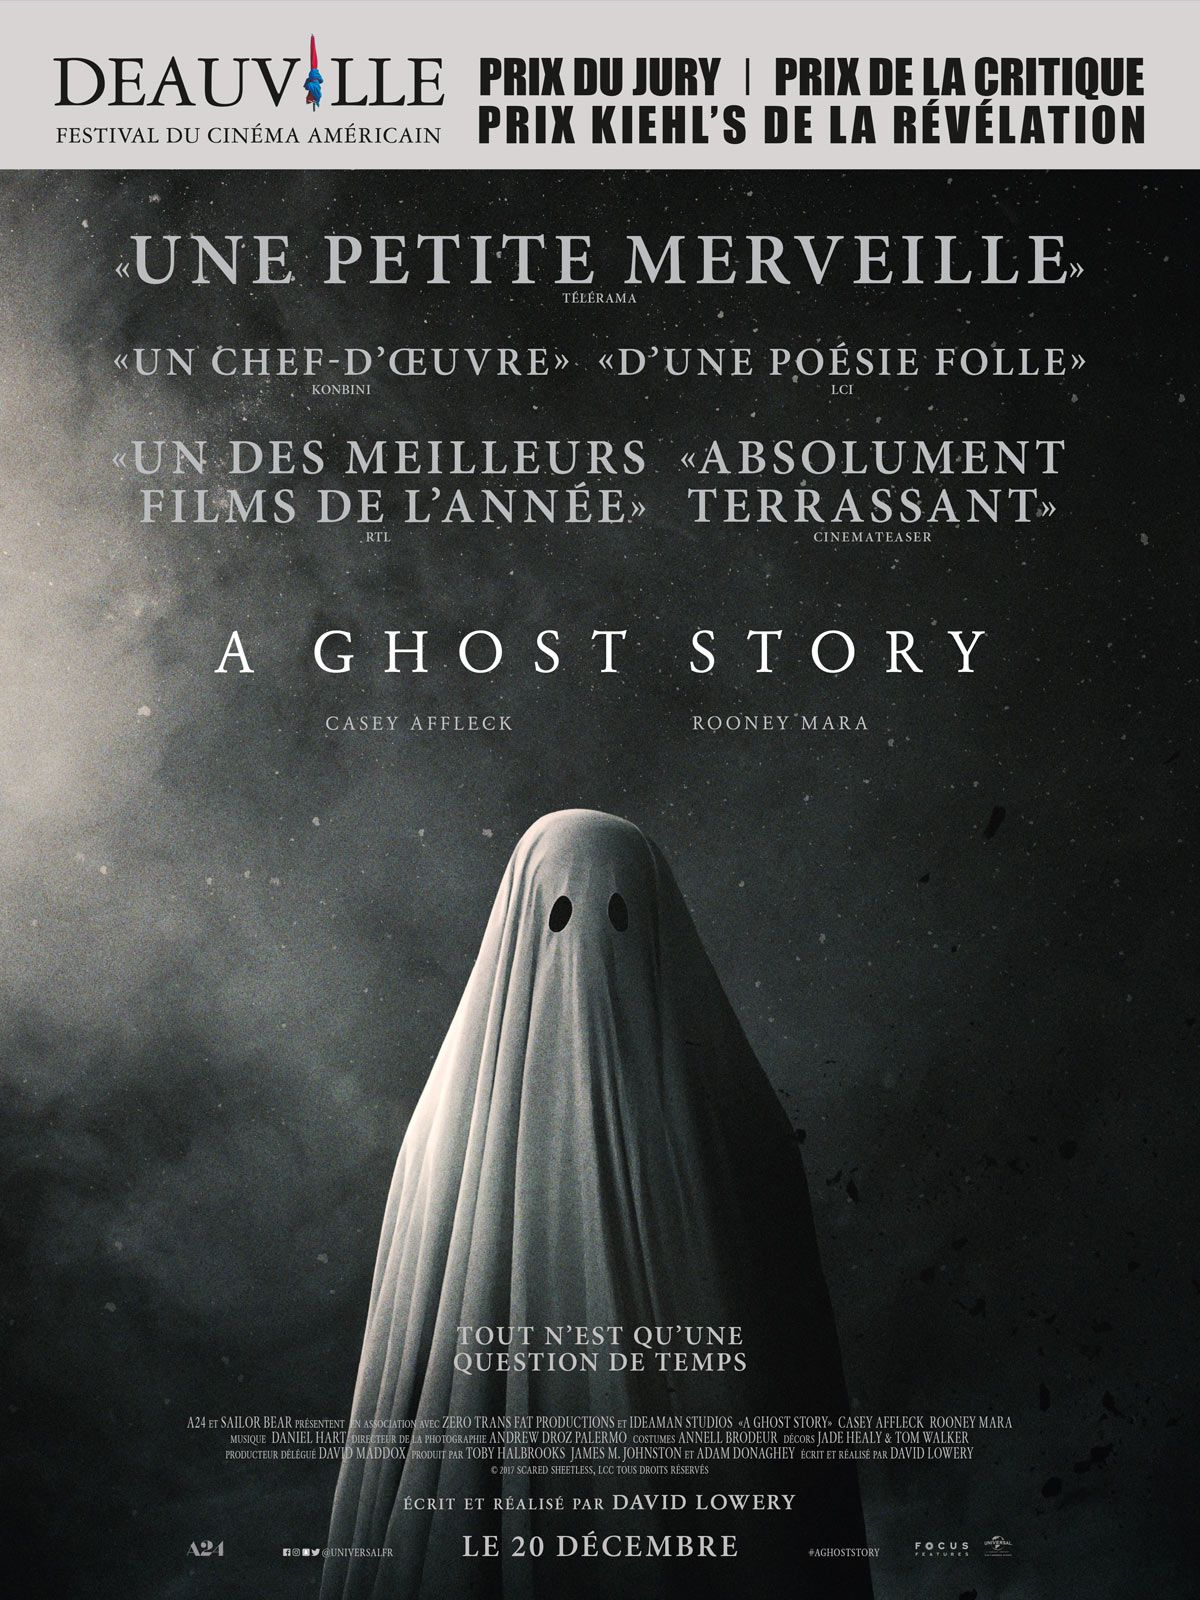 A Ghost Story - Film (2017) streaming VF gratuit complet